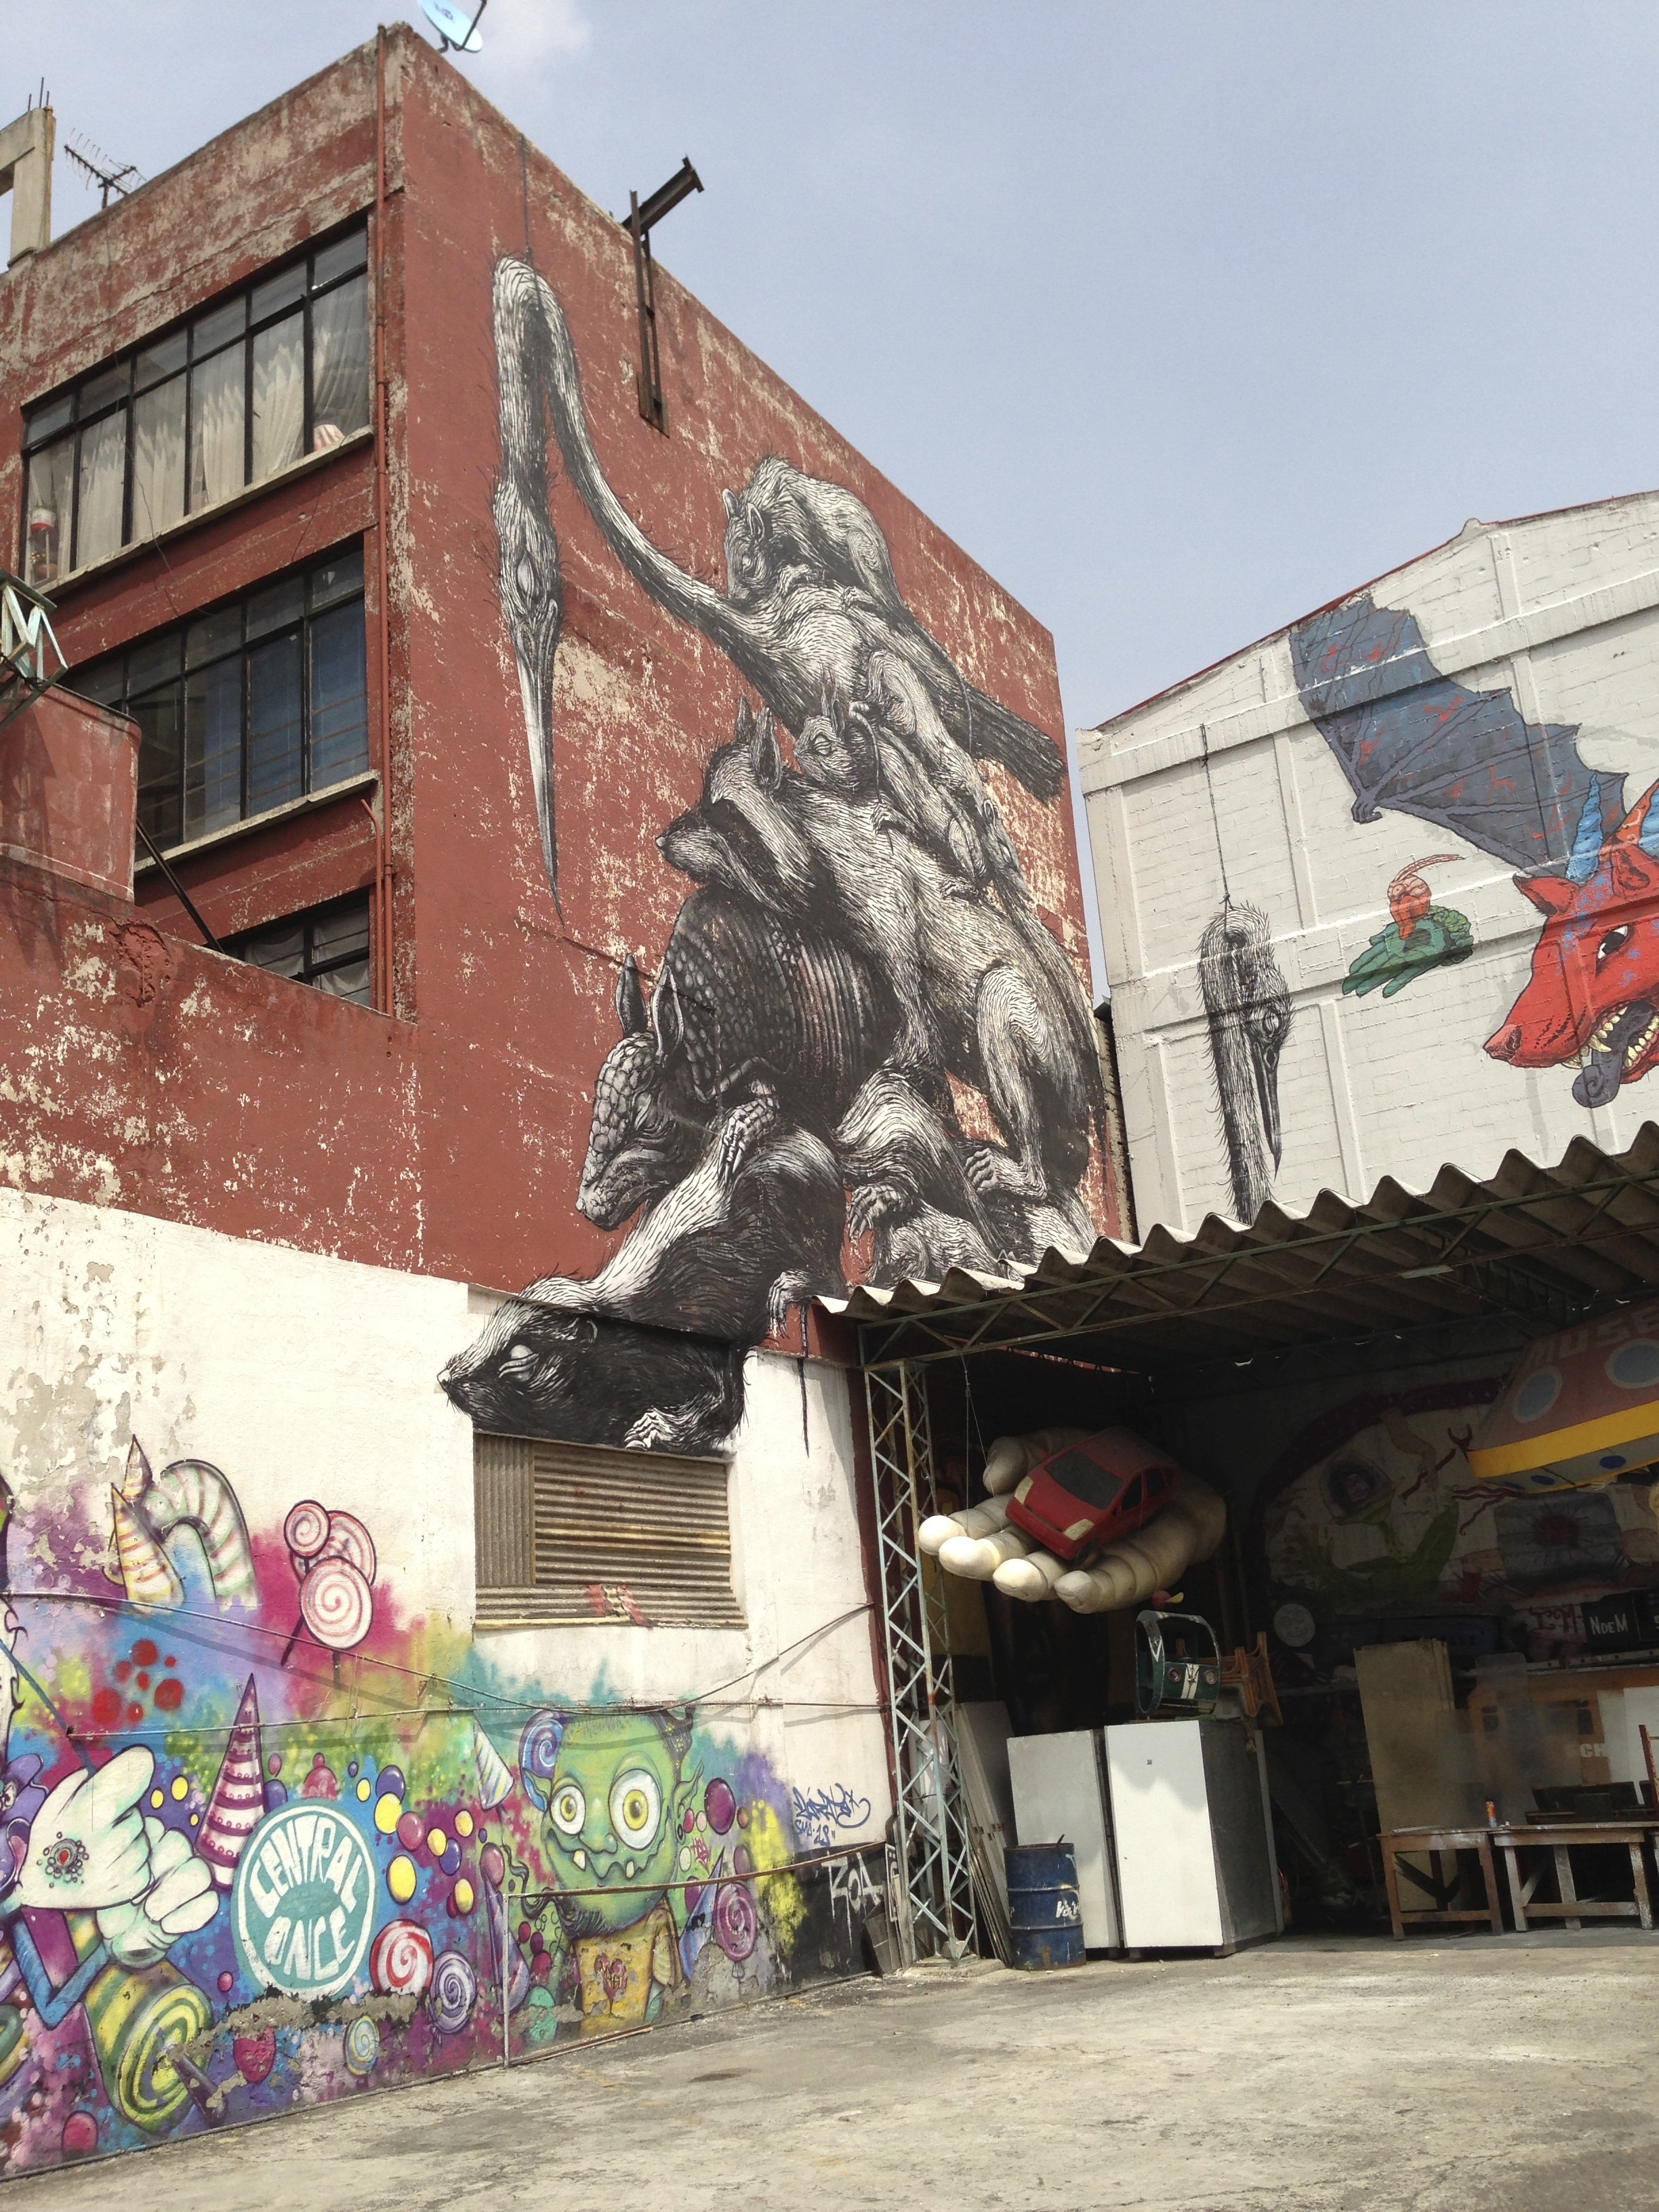 A Unique Place To See Street Art In Mexico City